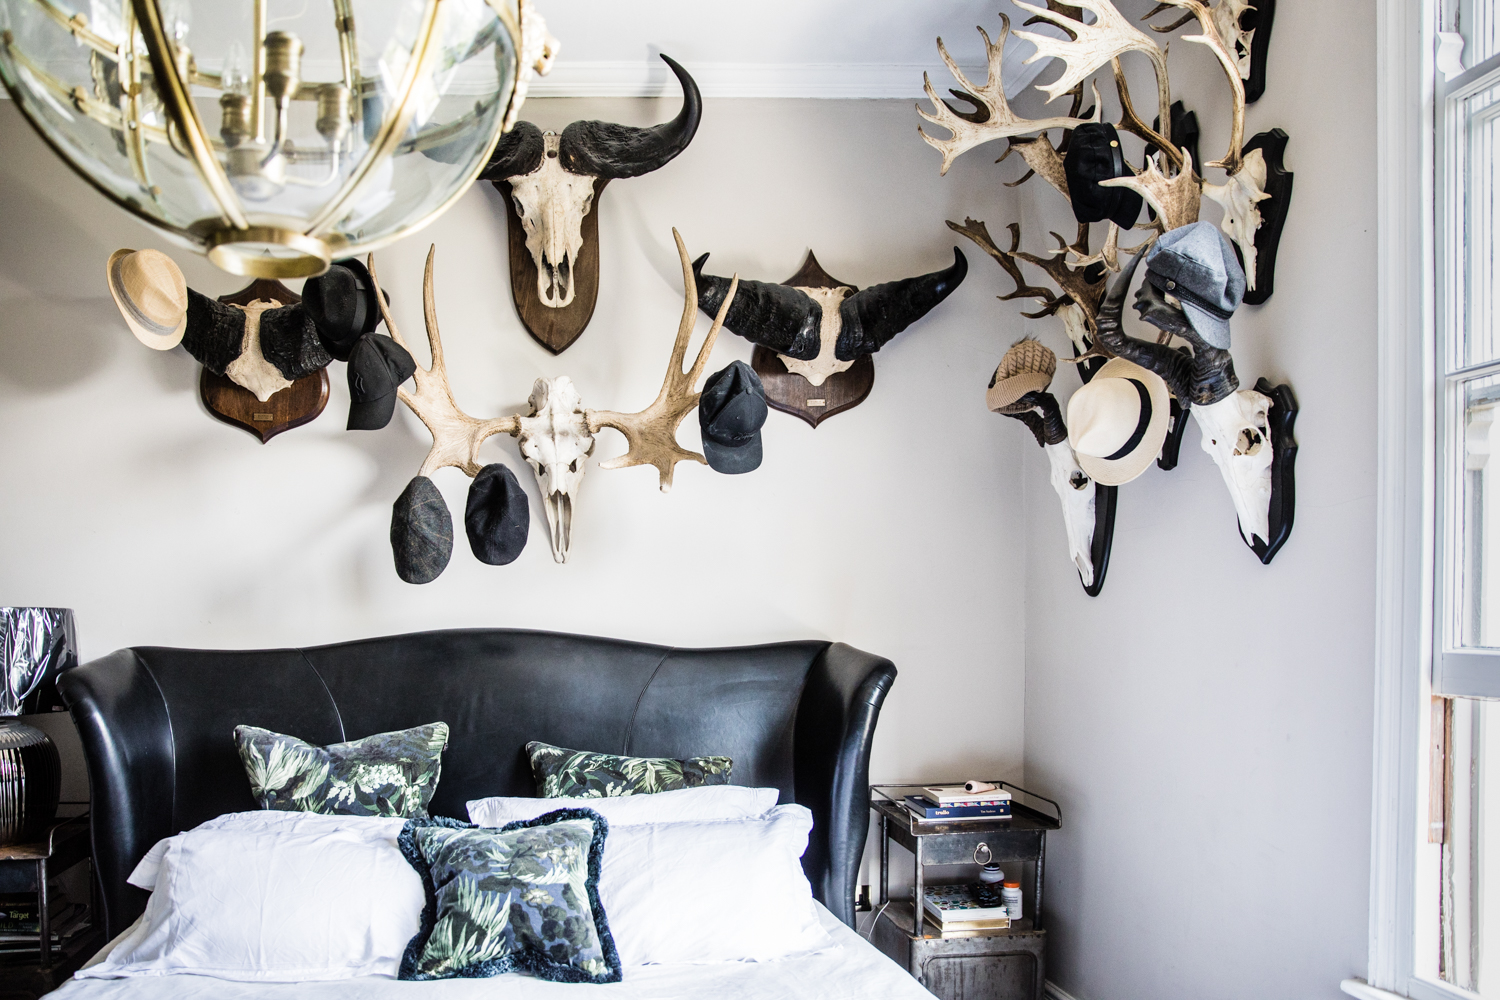 Check out those House of Hackney cushions